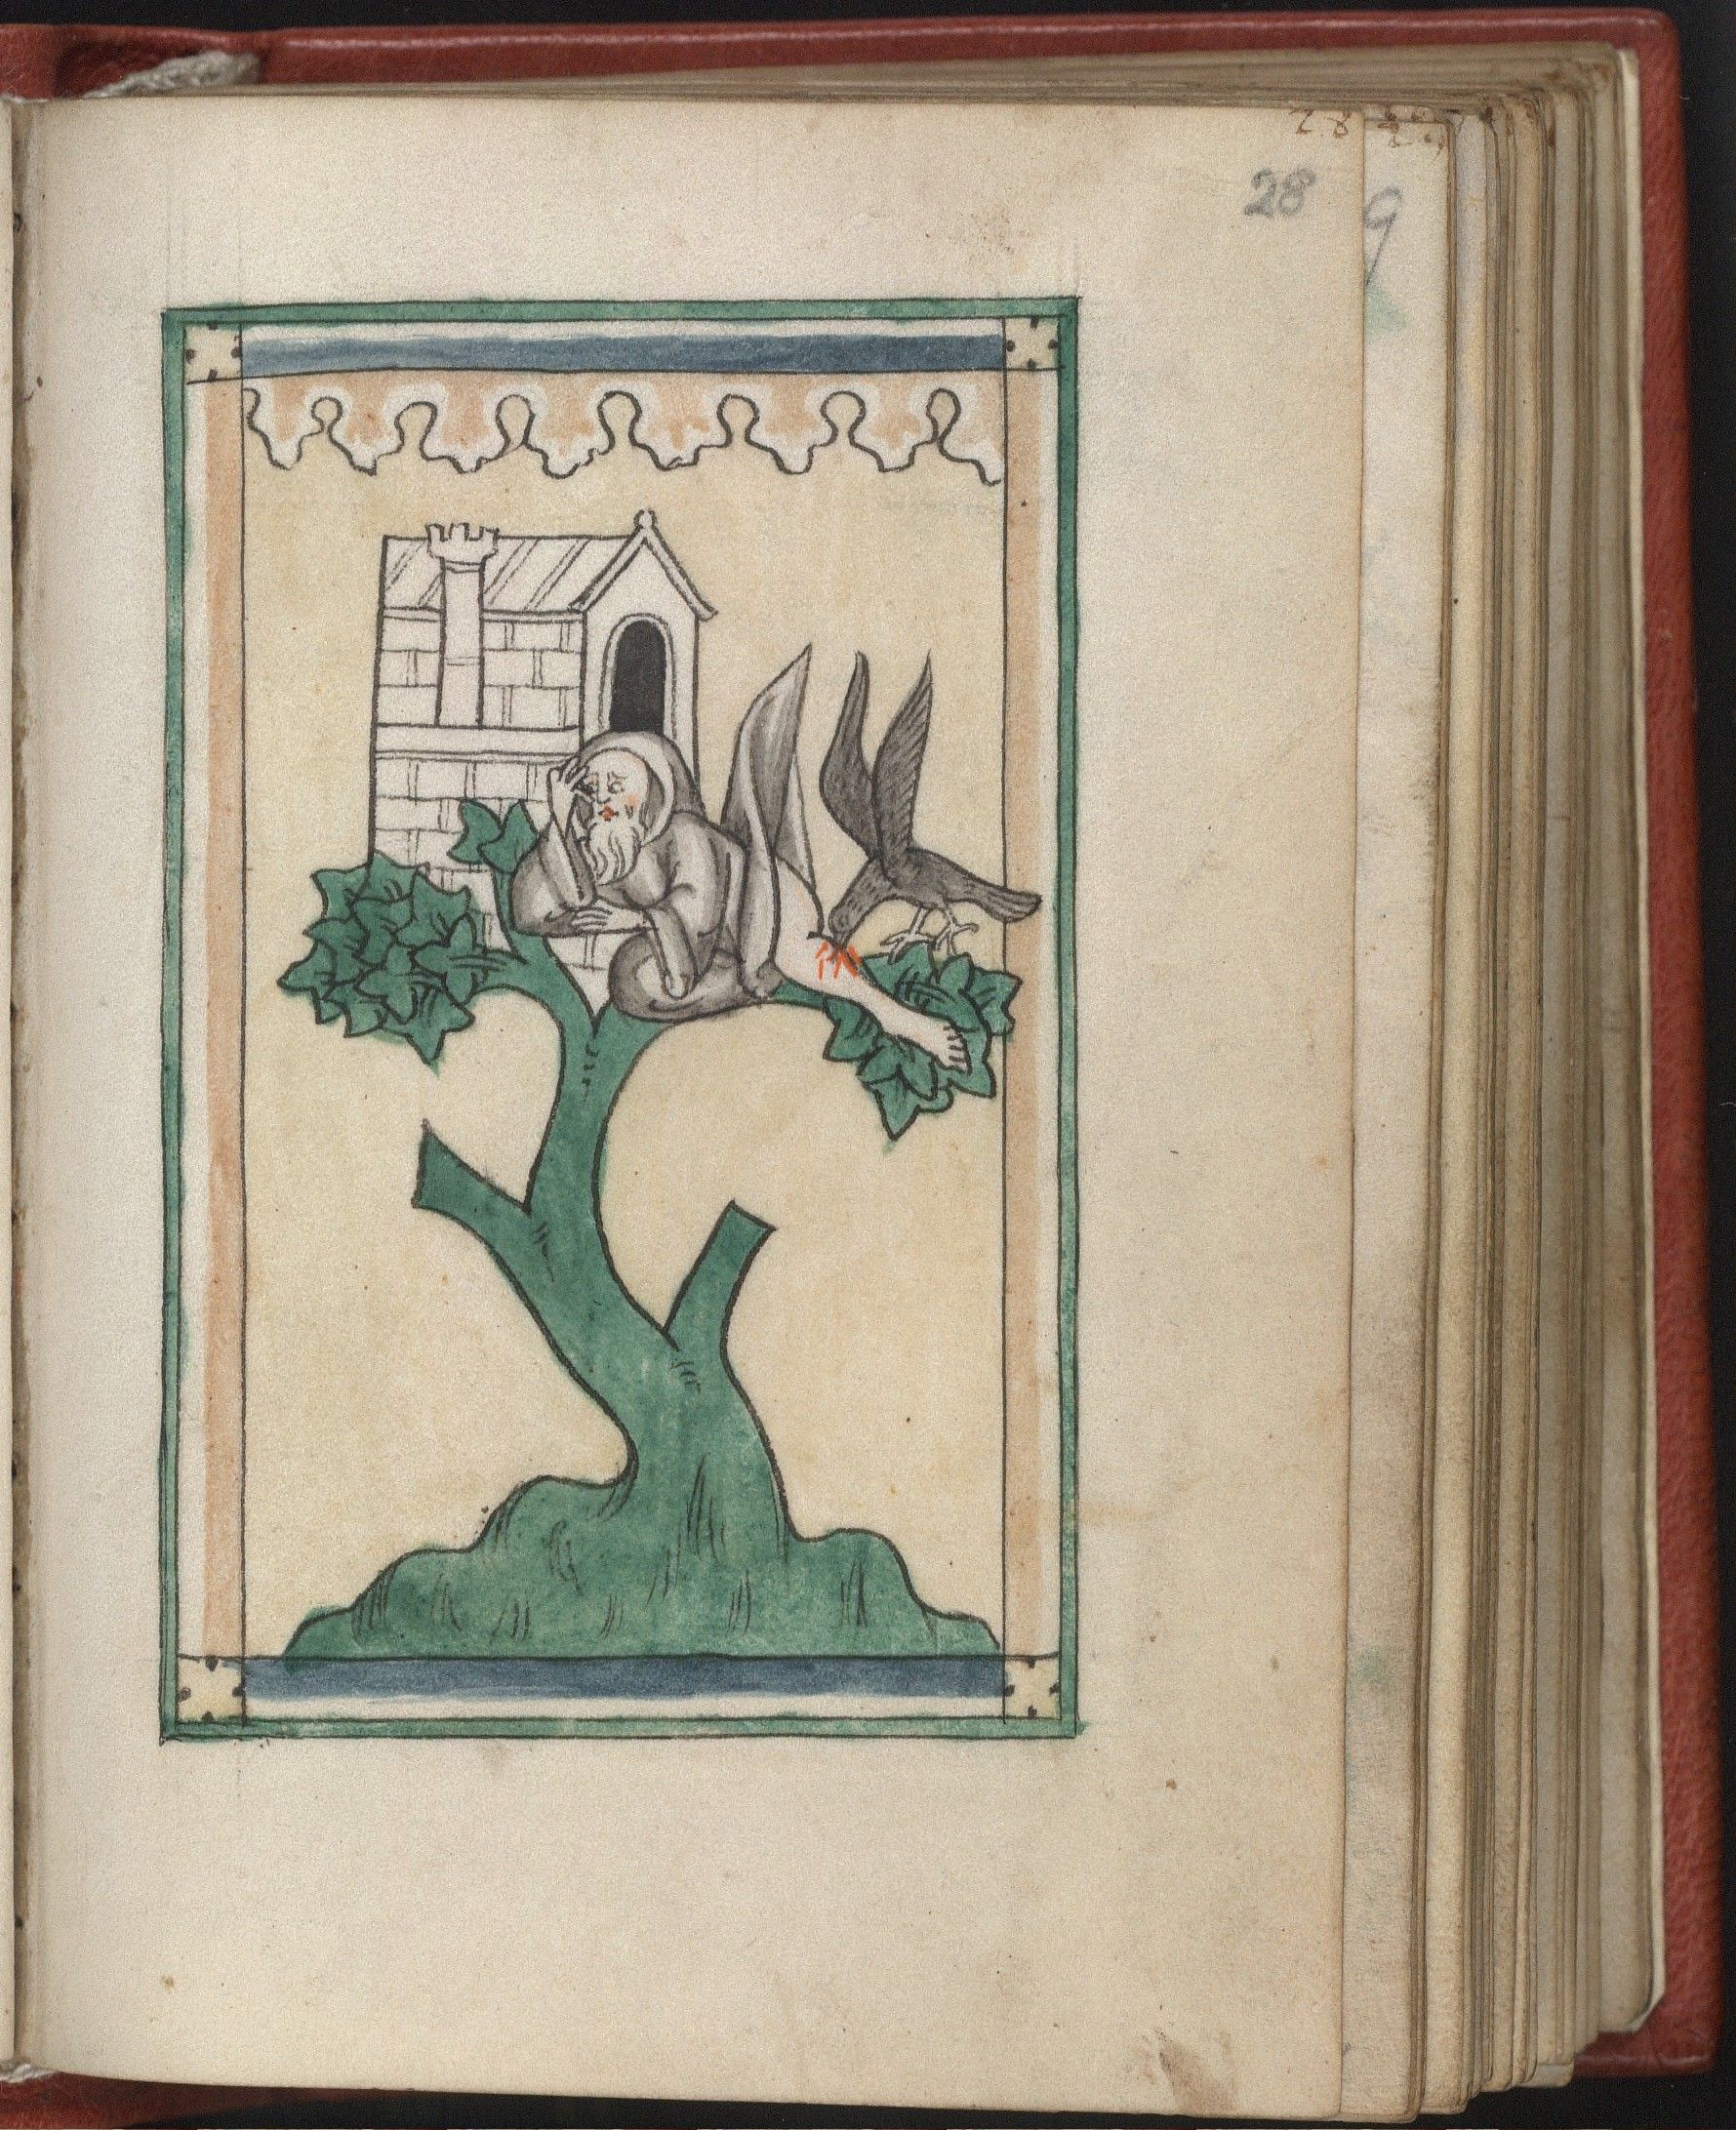 Rotschild Canticles folio 28r - hermit in a tree